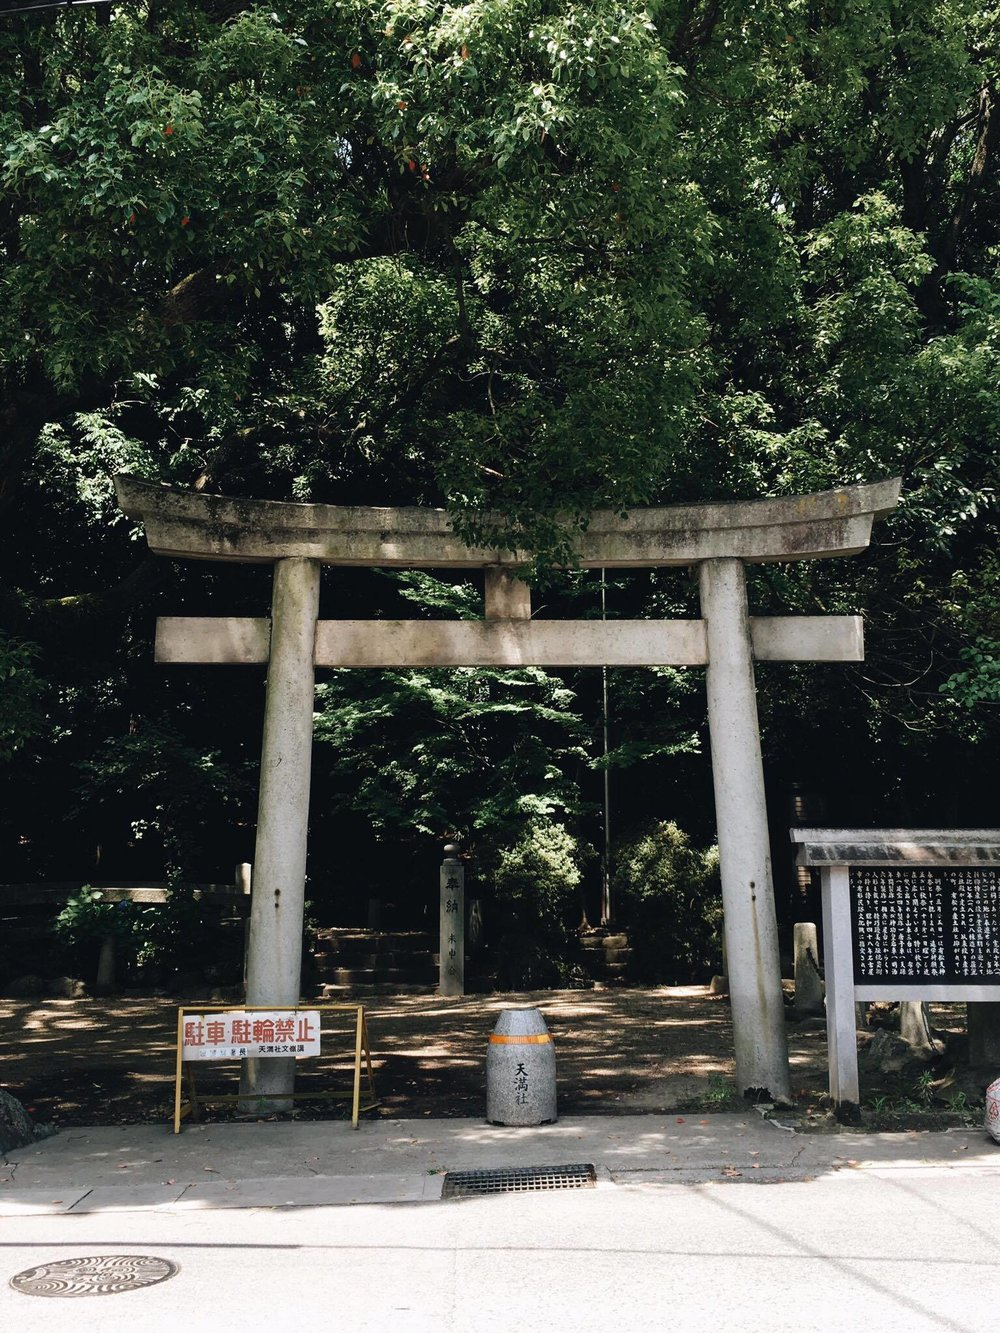 A local shrine in Arimatsu village is seen here. This humble town is the birthplace of Shibori Dyeing.